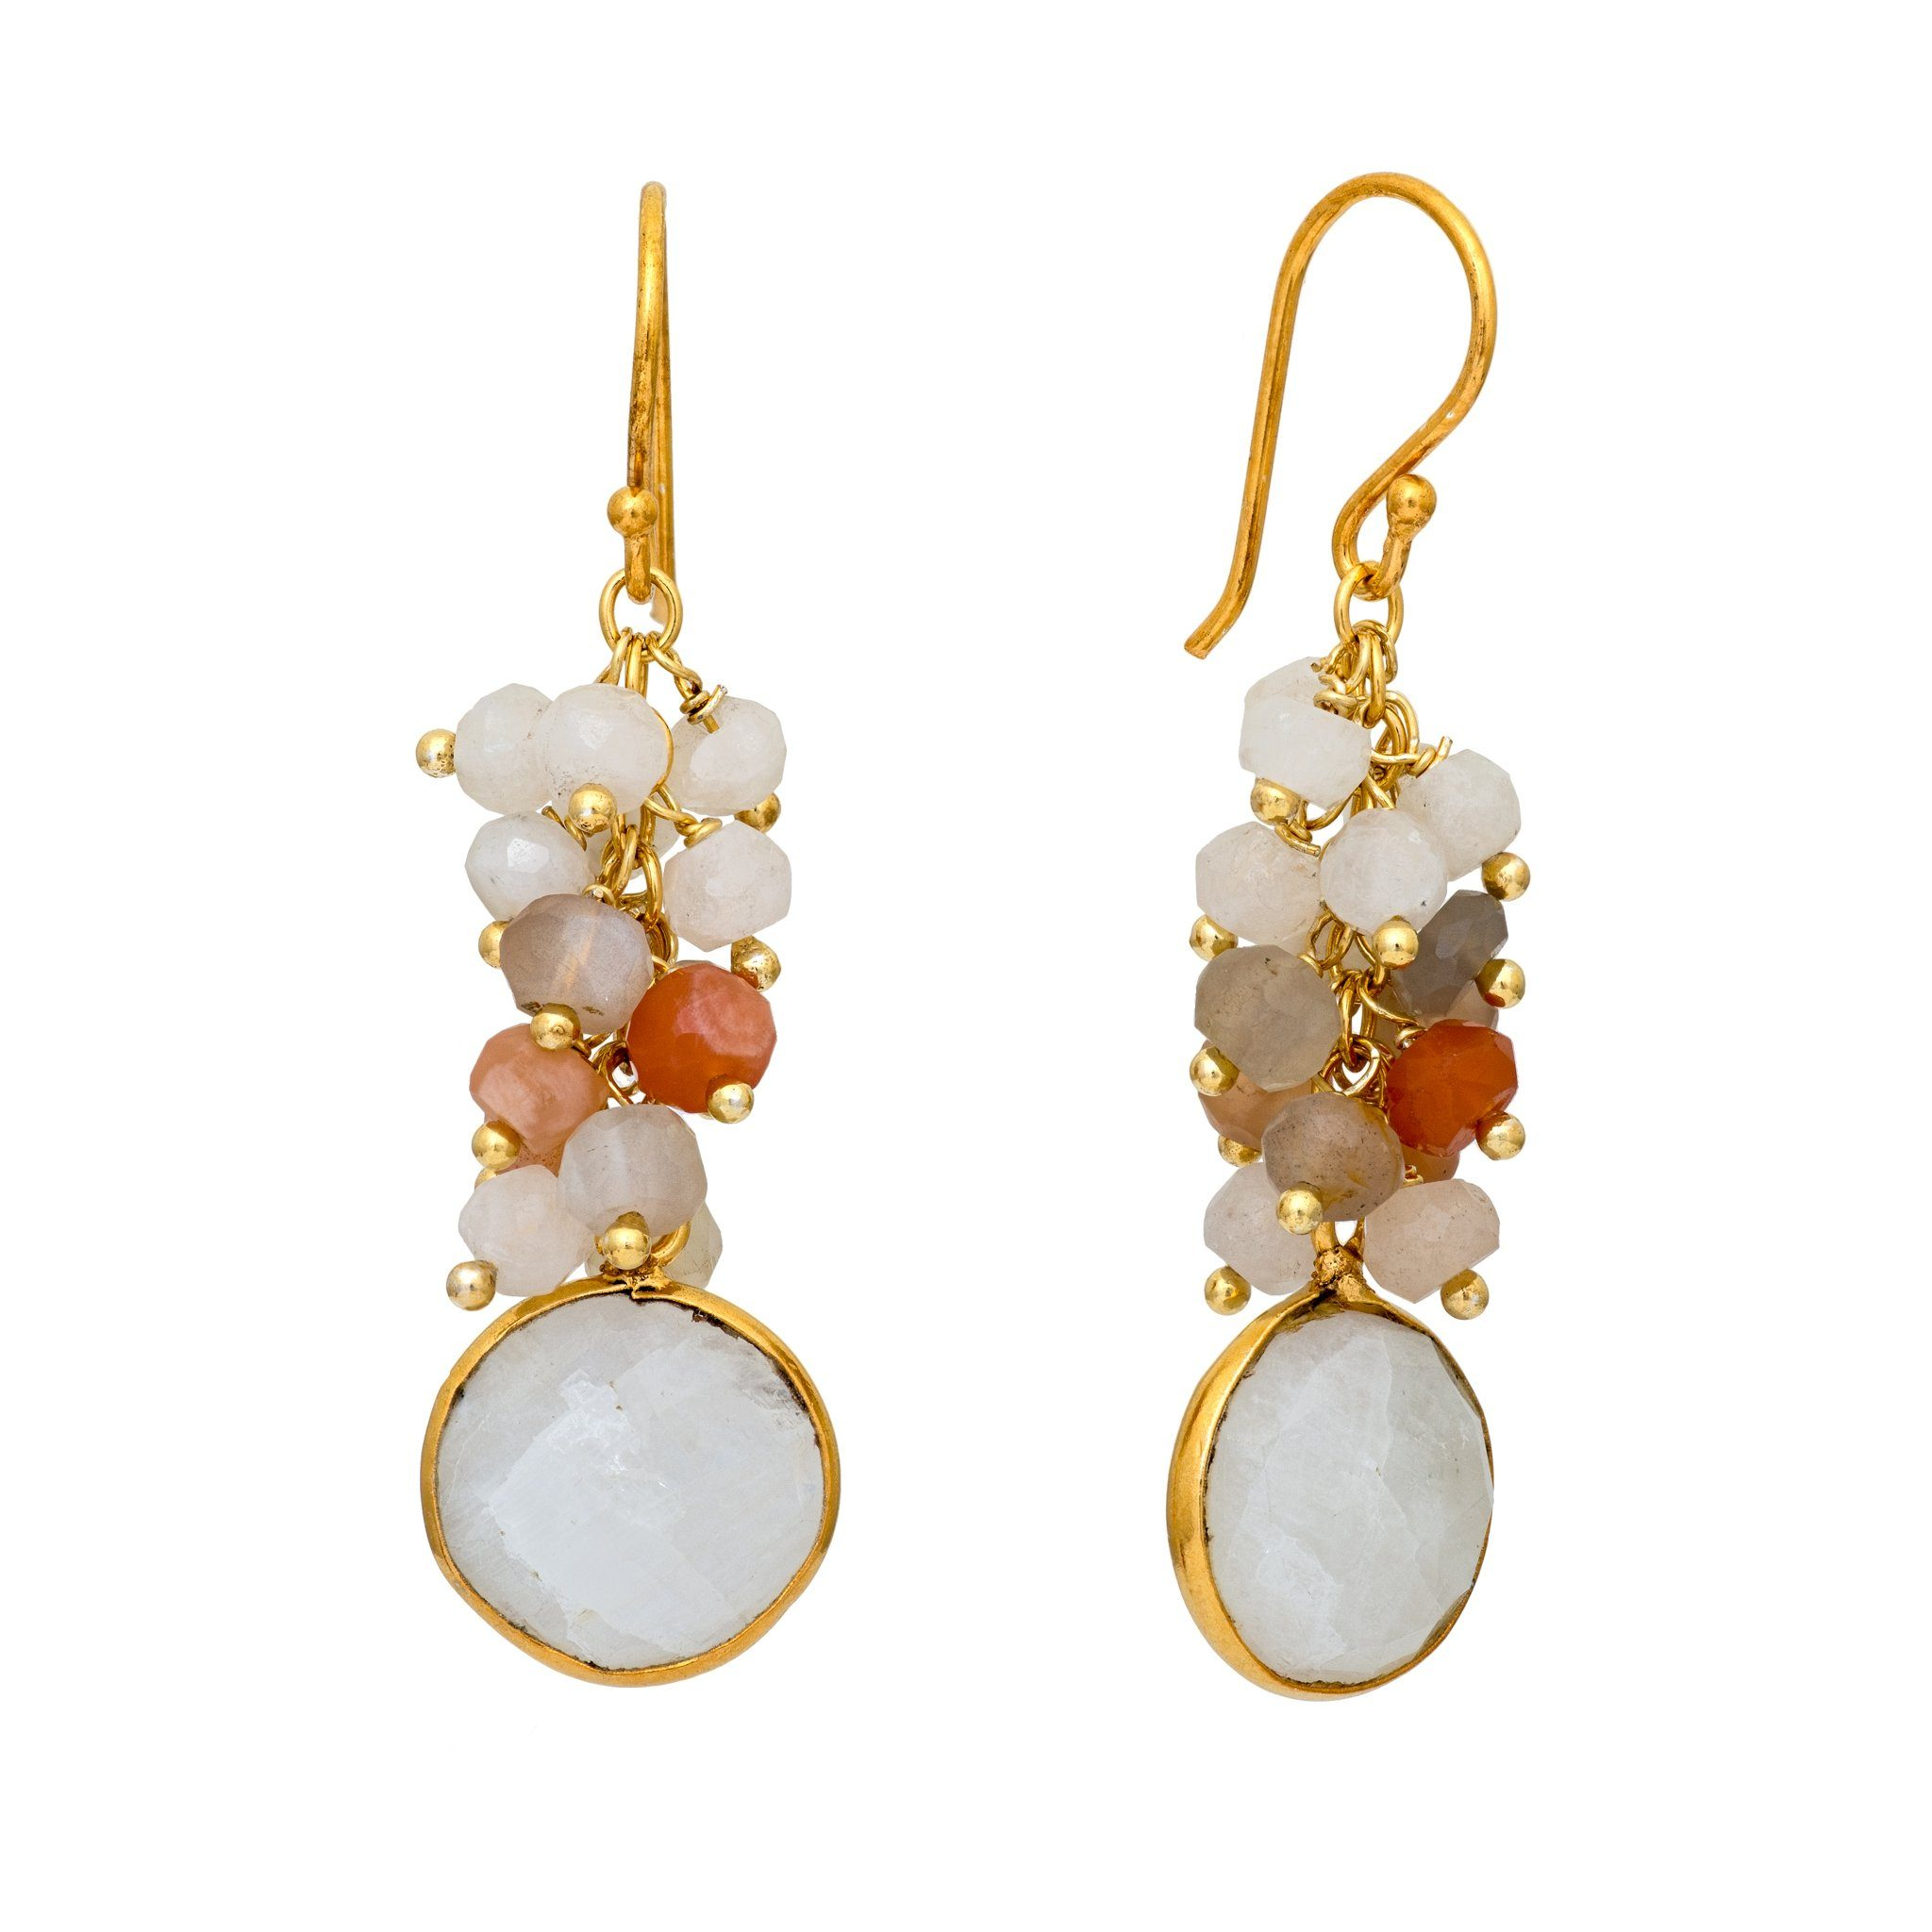 KAI mix of moonstone cluster earrings - MadamSiam